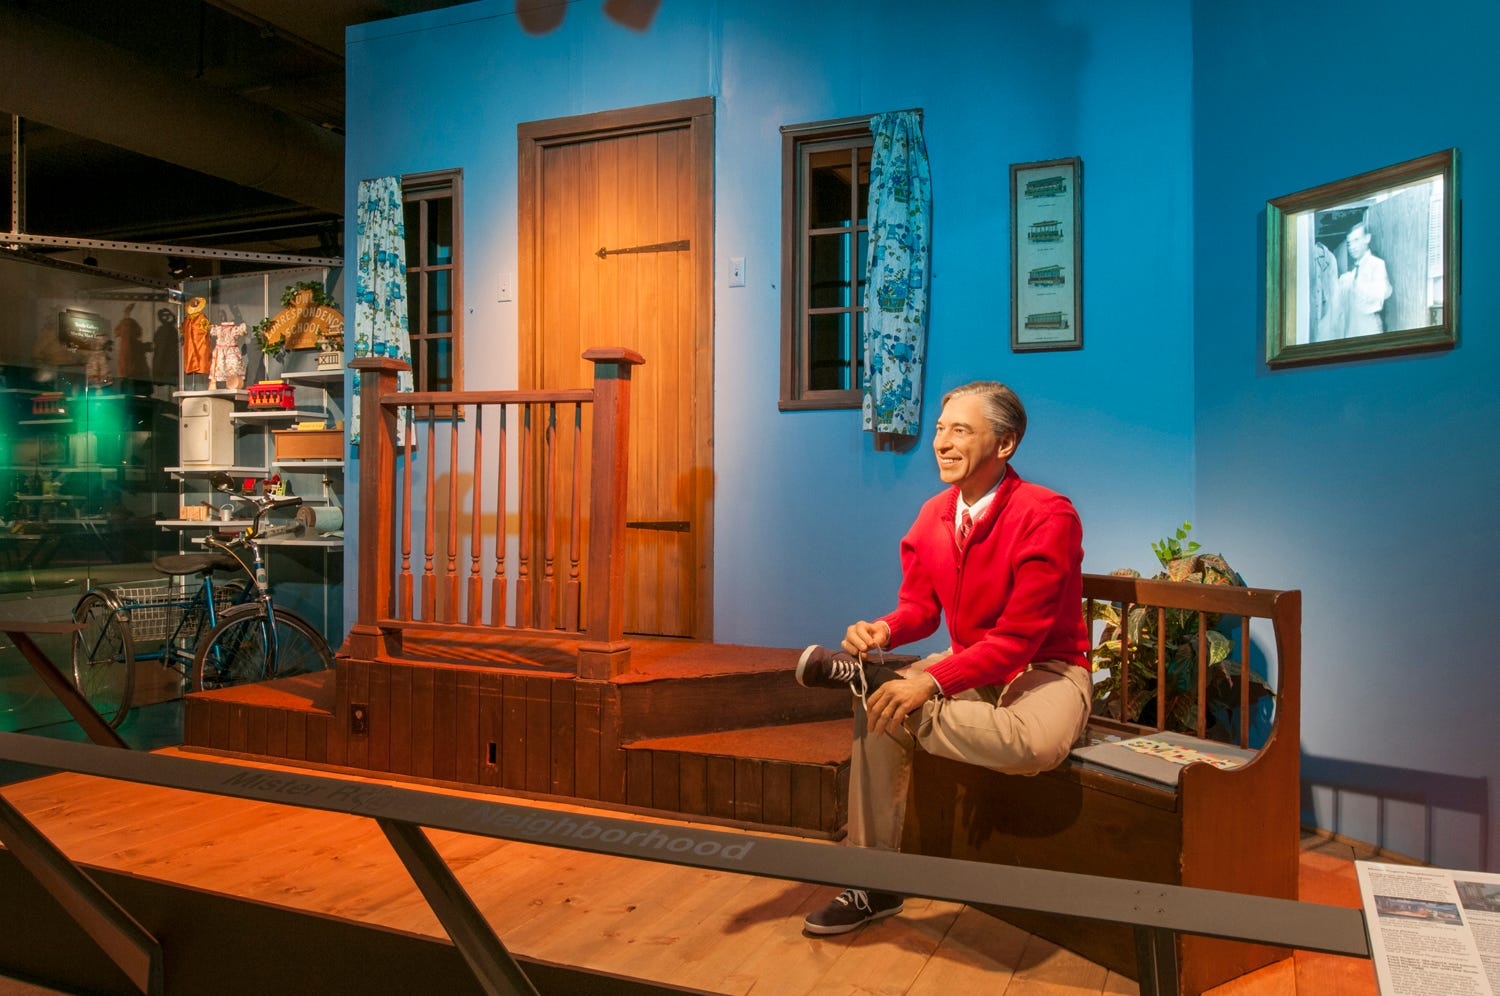 It's a beautiful day in Pennsylvania on Mister Rogers' trail   USA Today